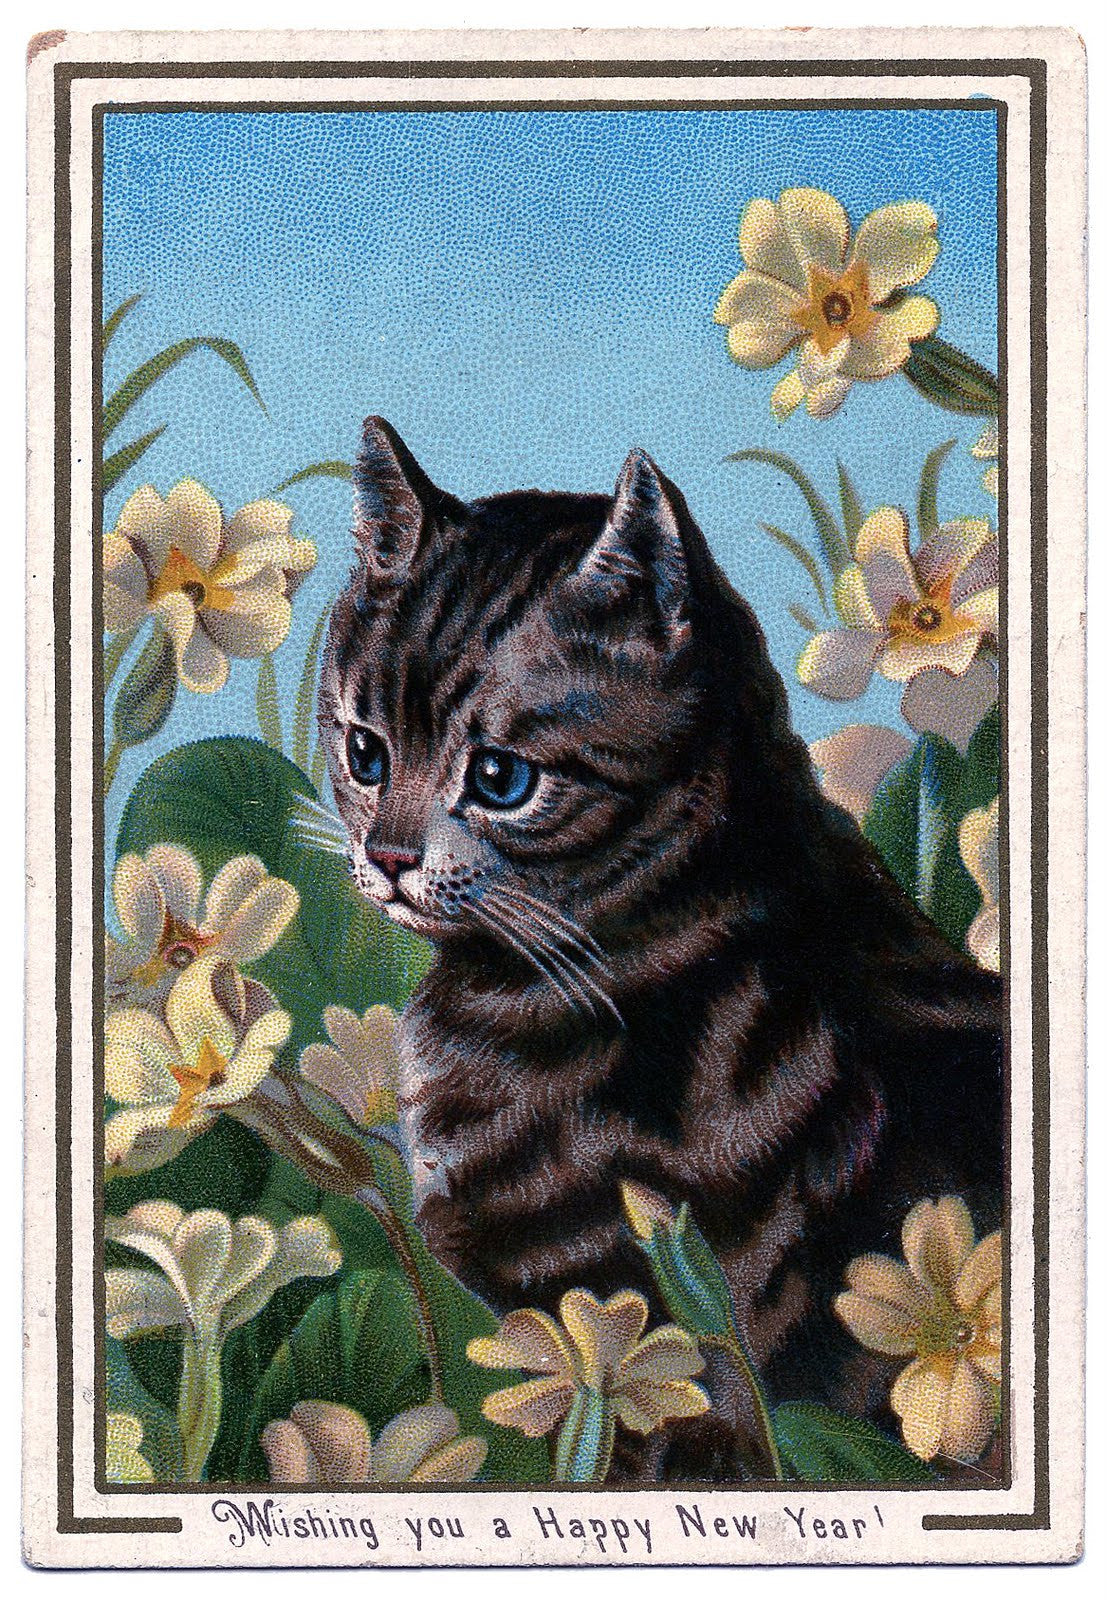 Free Vintage Cat Image To Download - Photo Jewelry Making